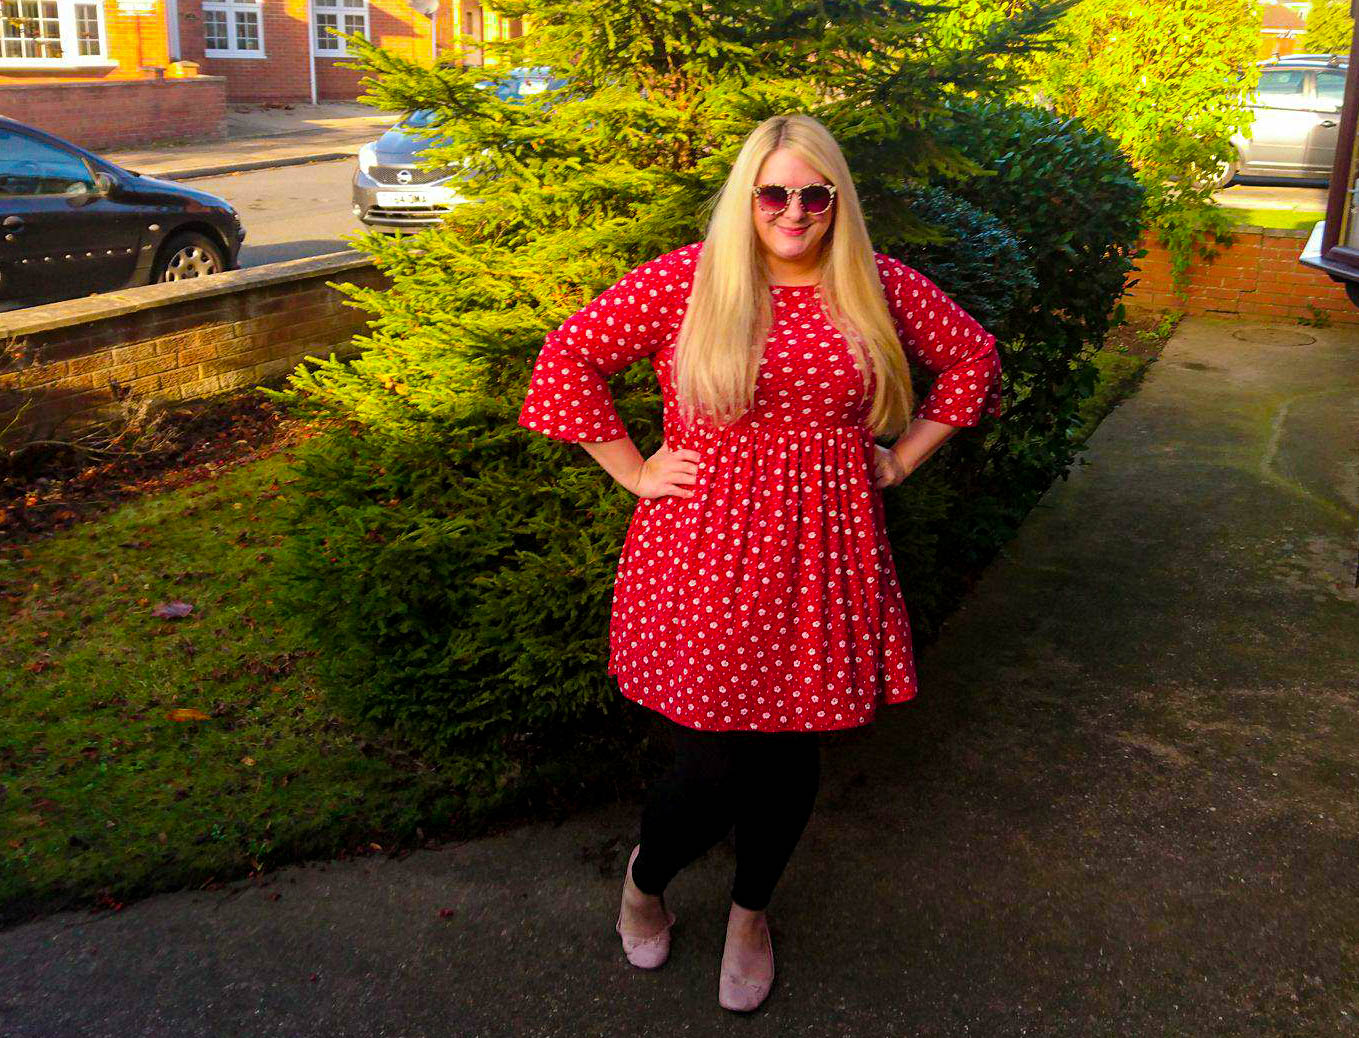 Me standing in my front garden wearing a red dress from LOTD which finses above the knee. It has bell sleeves and an A-line fit